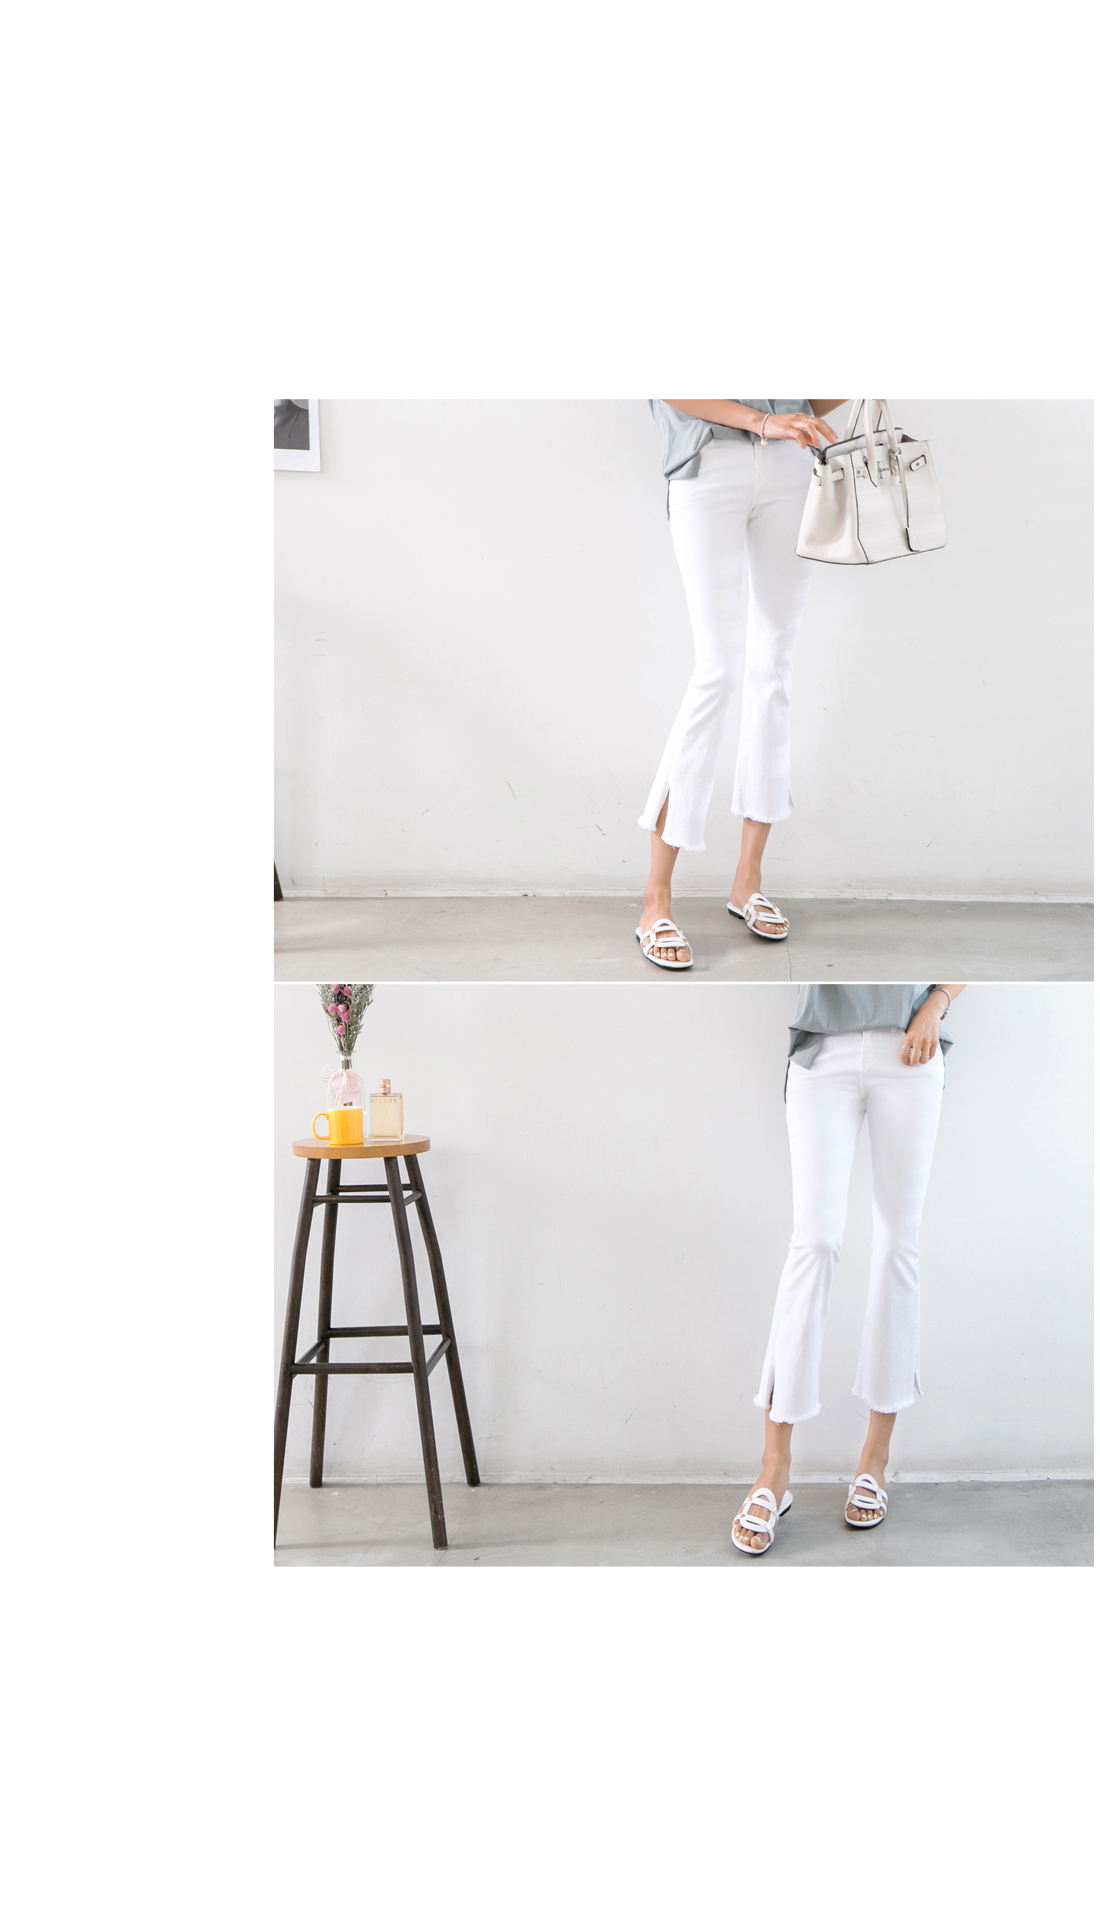 Daily 7 copies side trim white jeans #73751 size S/M/L available